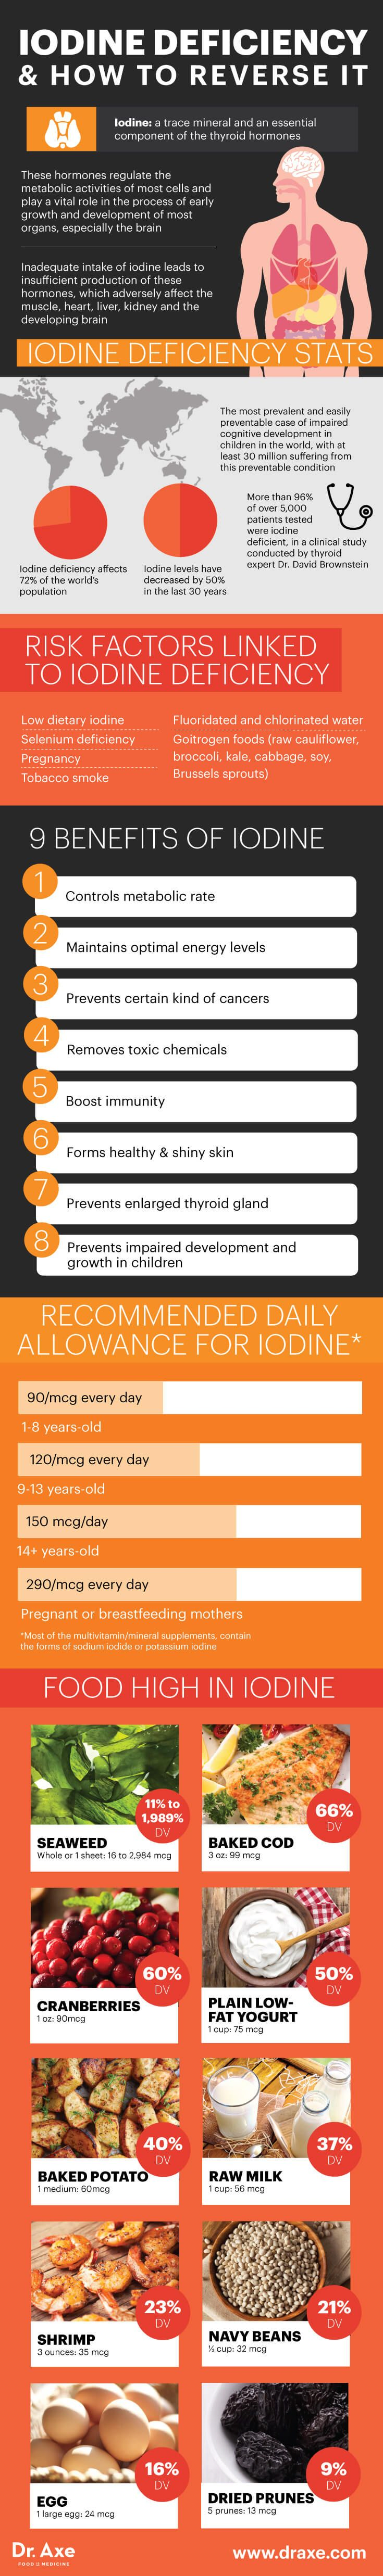 The Iodine Deficiency Epidemic — How to Reverse It for Your Health - Dr. Axe